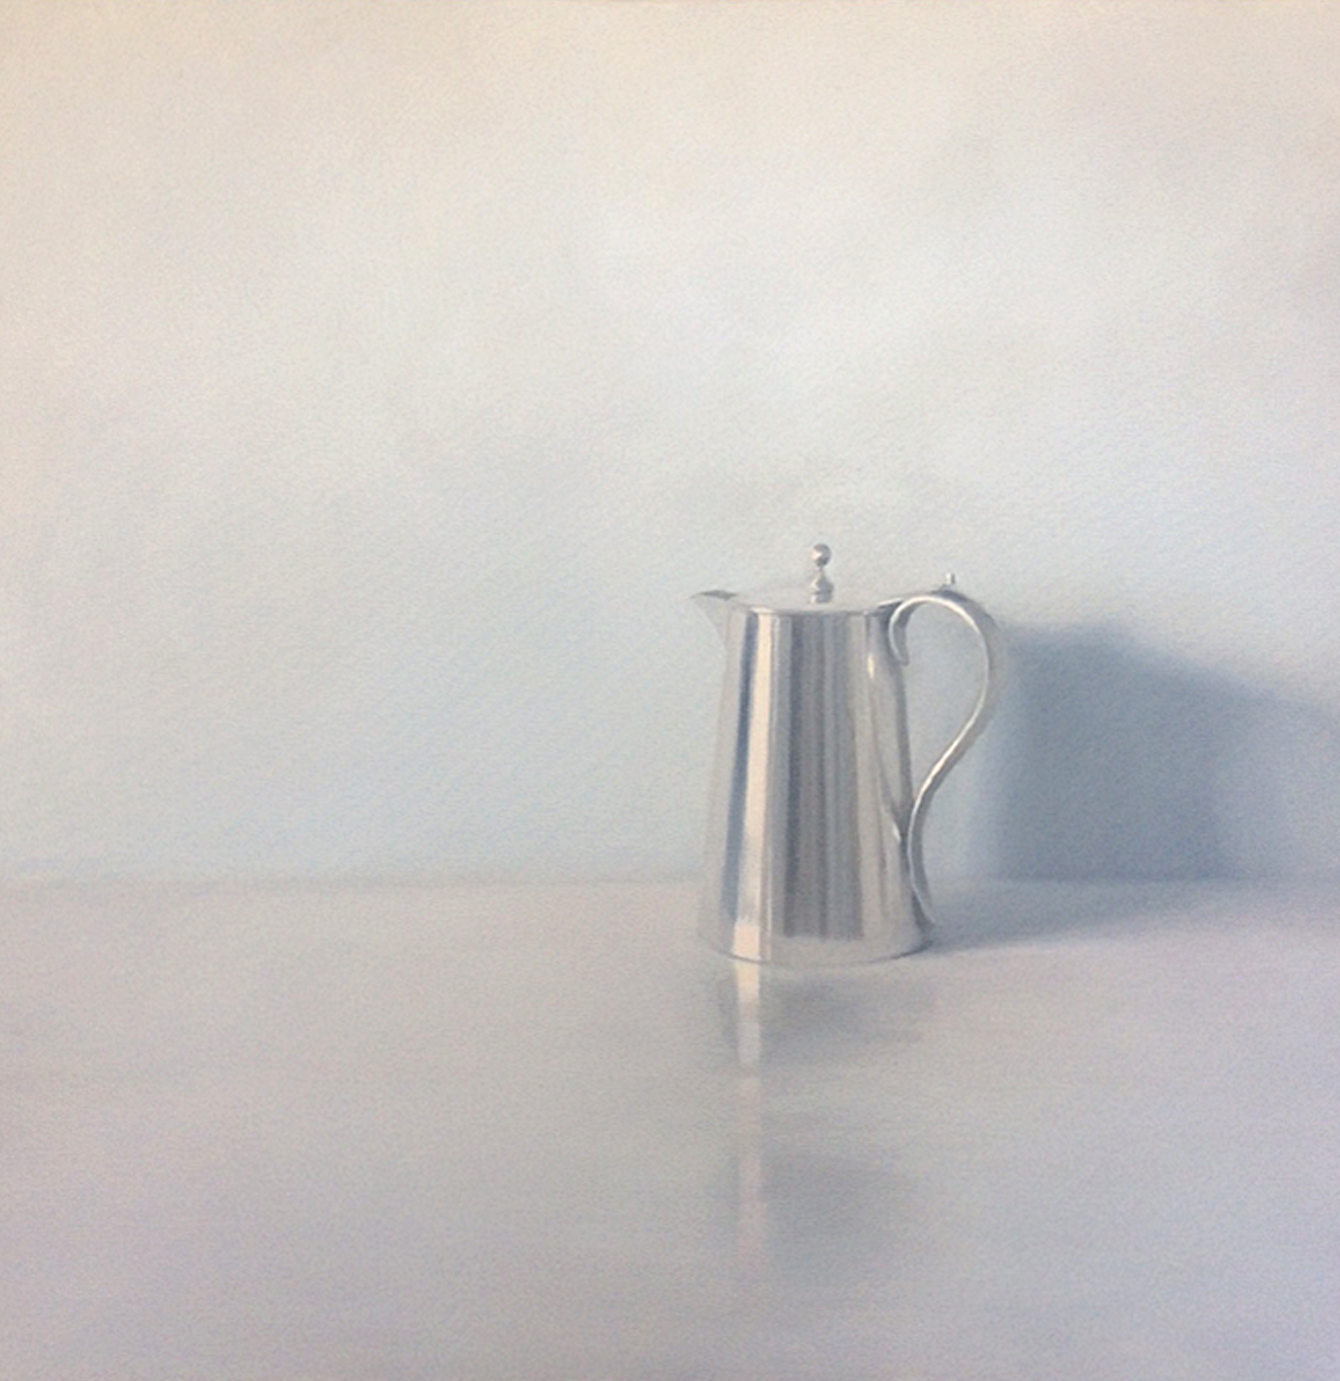 Artist: Harriet Porter  Title: Simple Beauty  Medium: Oil on canvas  Size: 90 x 90 cm  Price: £2750